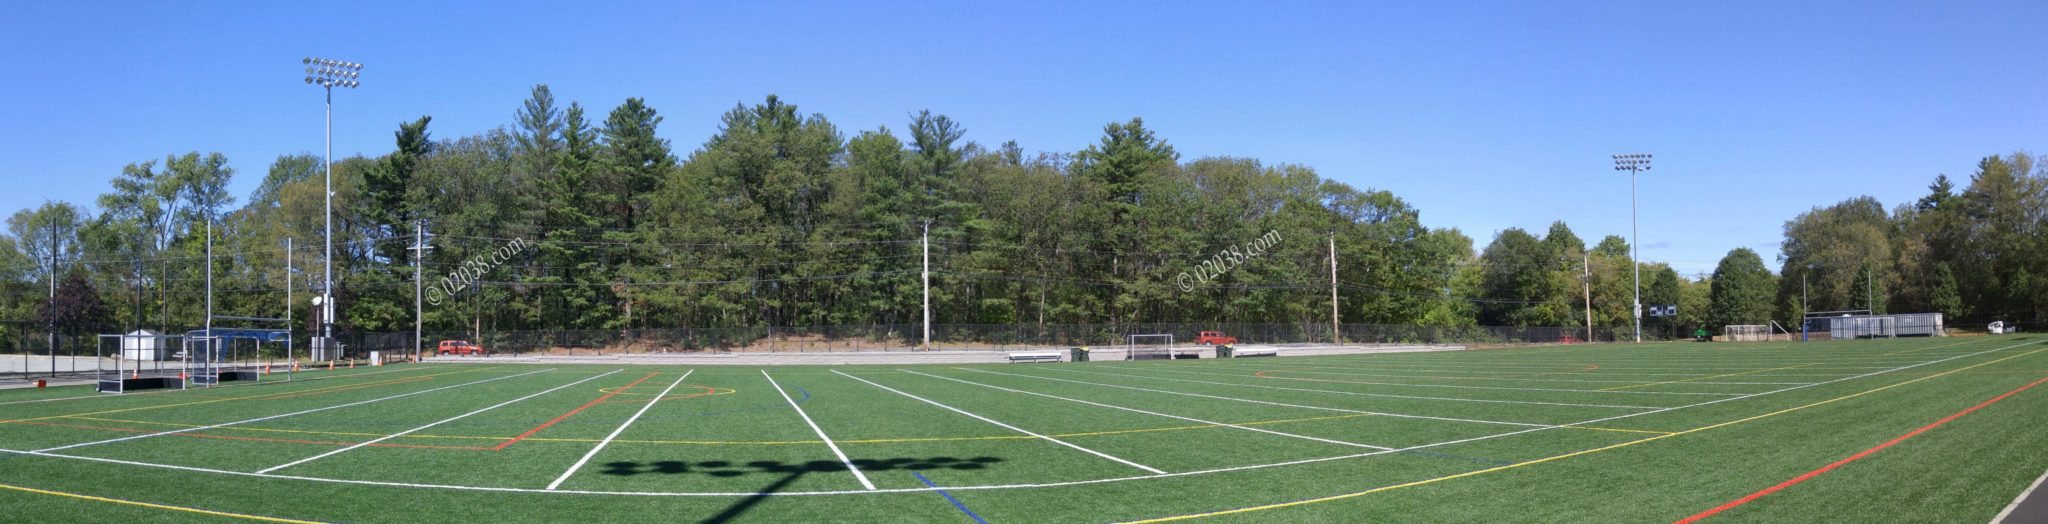 Beaver Pond Recreation Area Franklin MA - turf field new